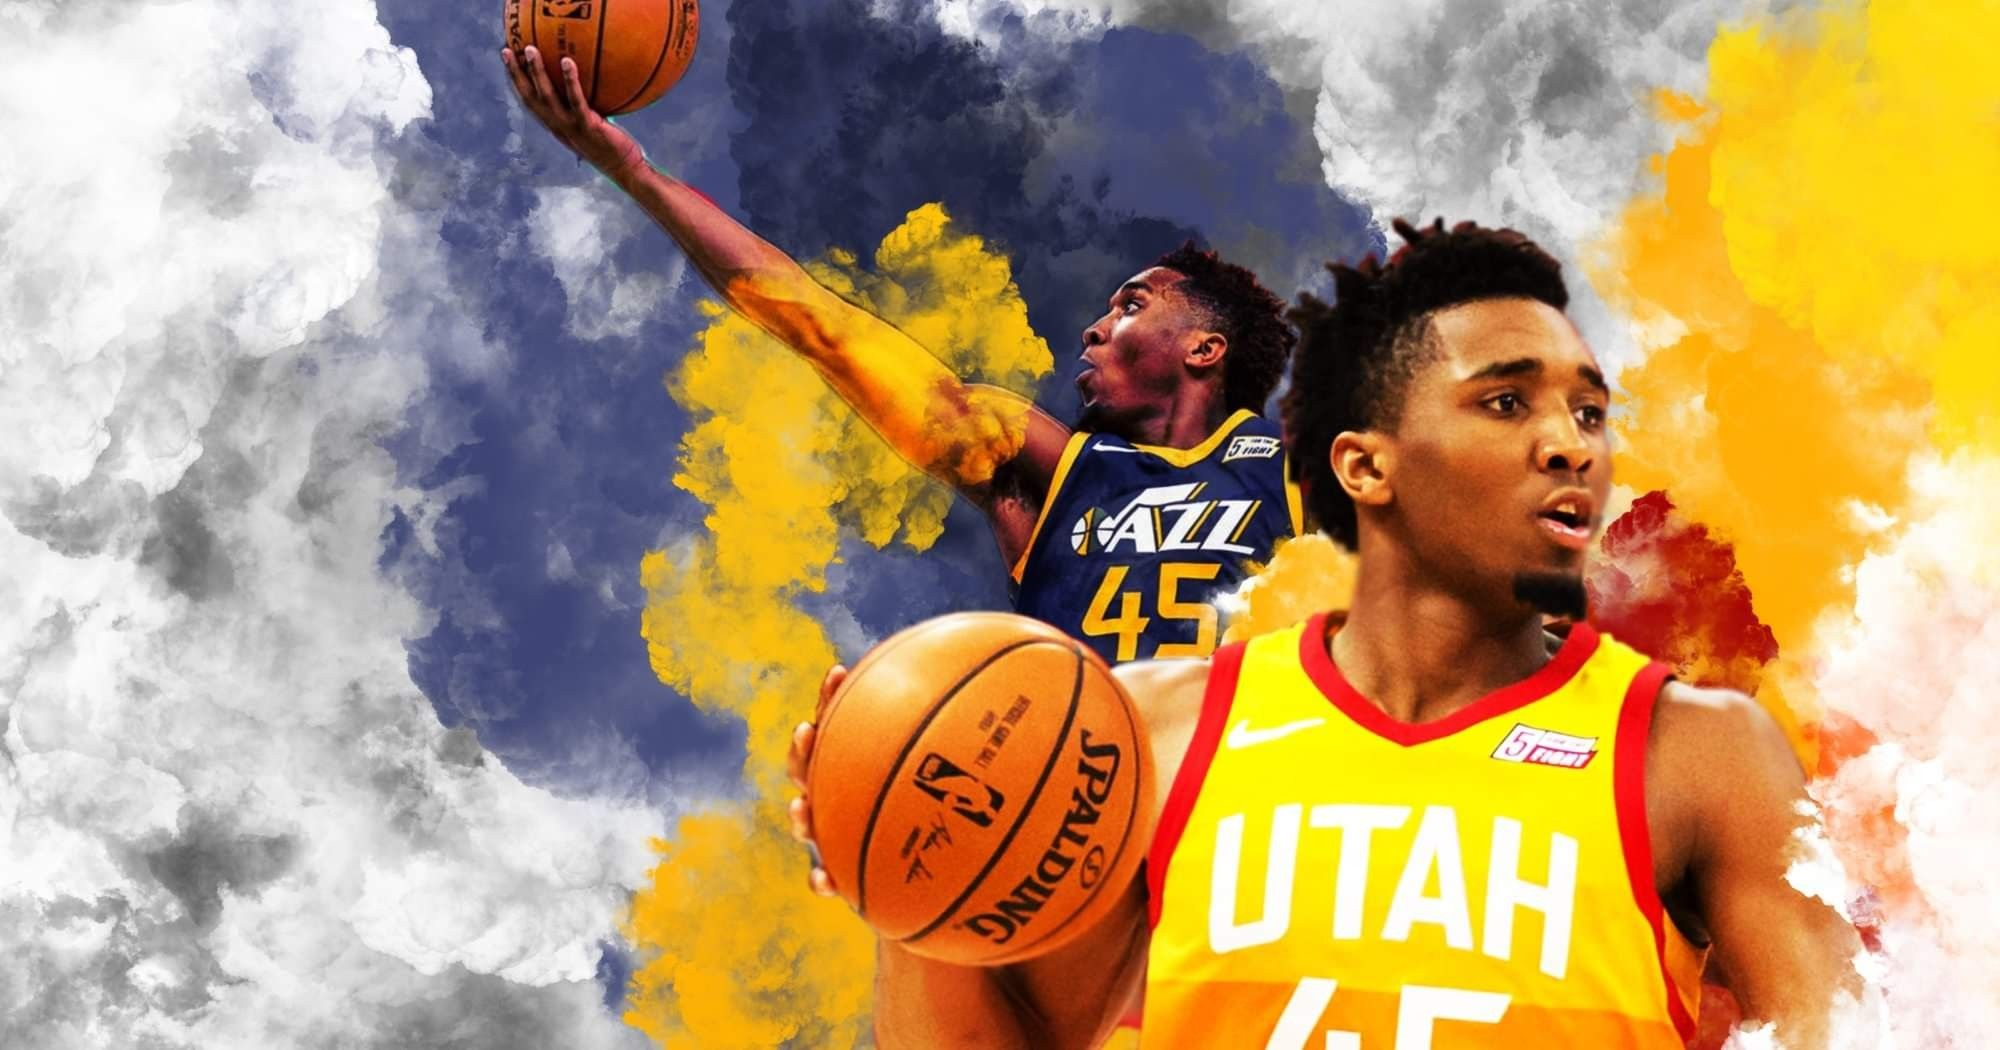 reputable site 683c3 8912f Donovan Mitchell in the Utah city Jersey Red Rock Style. By ...